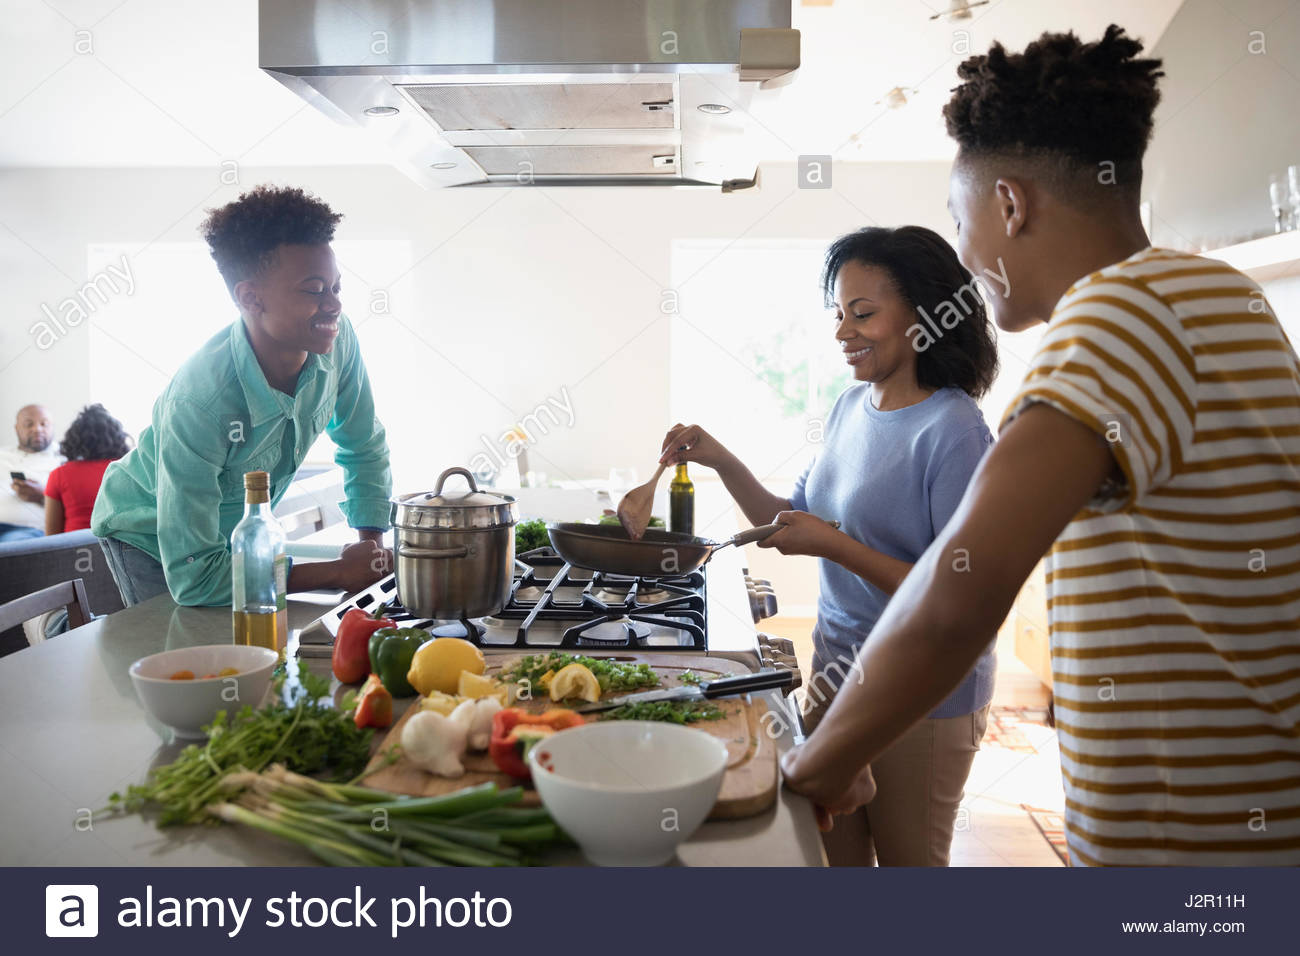 African American mother and teenage sons cooking at stove in kitchen - Stock Image